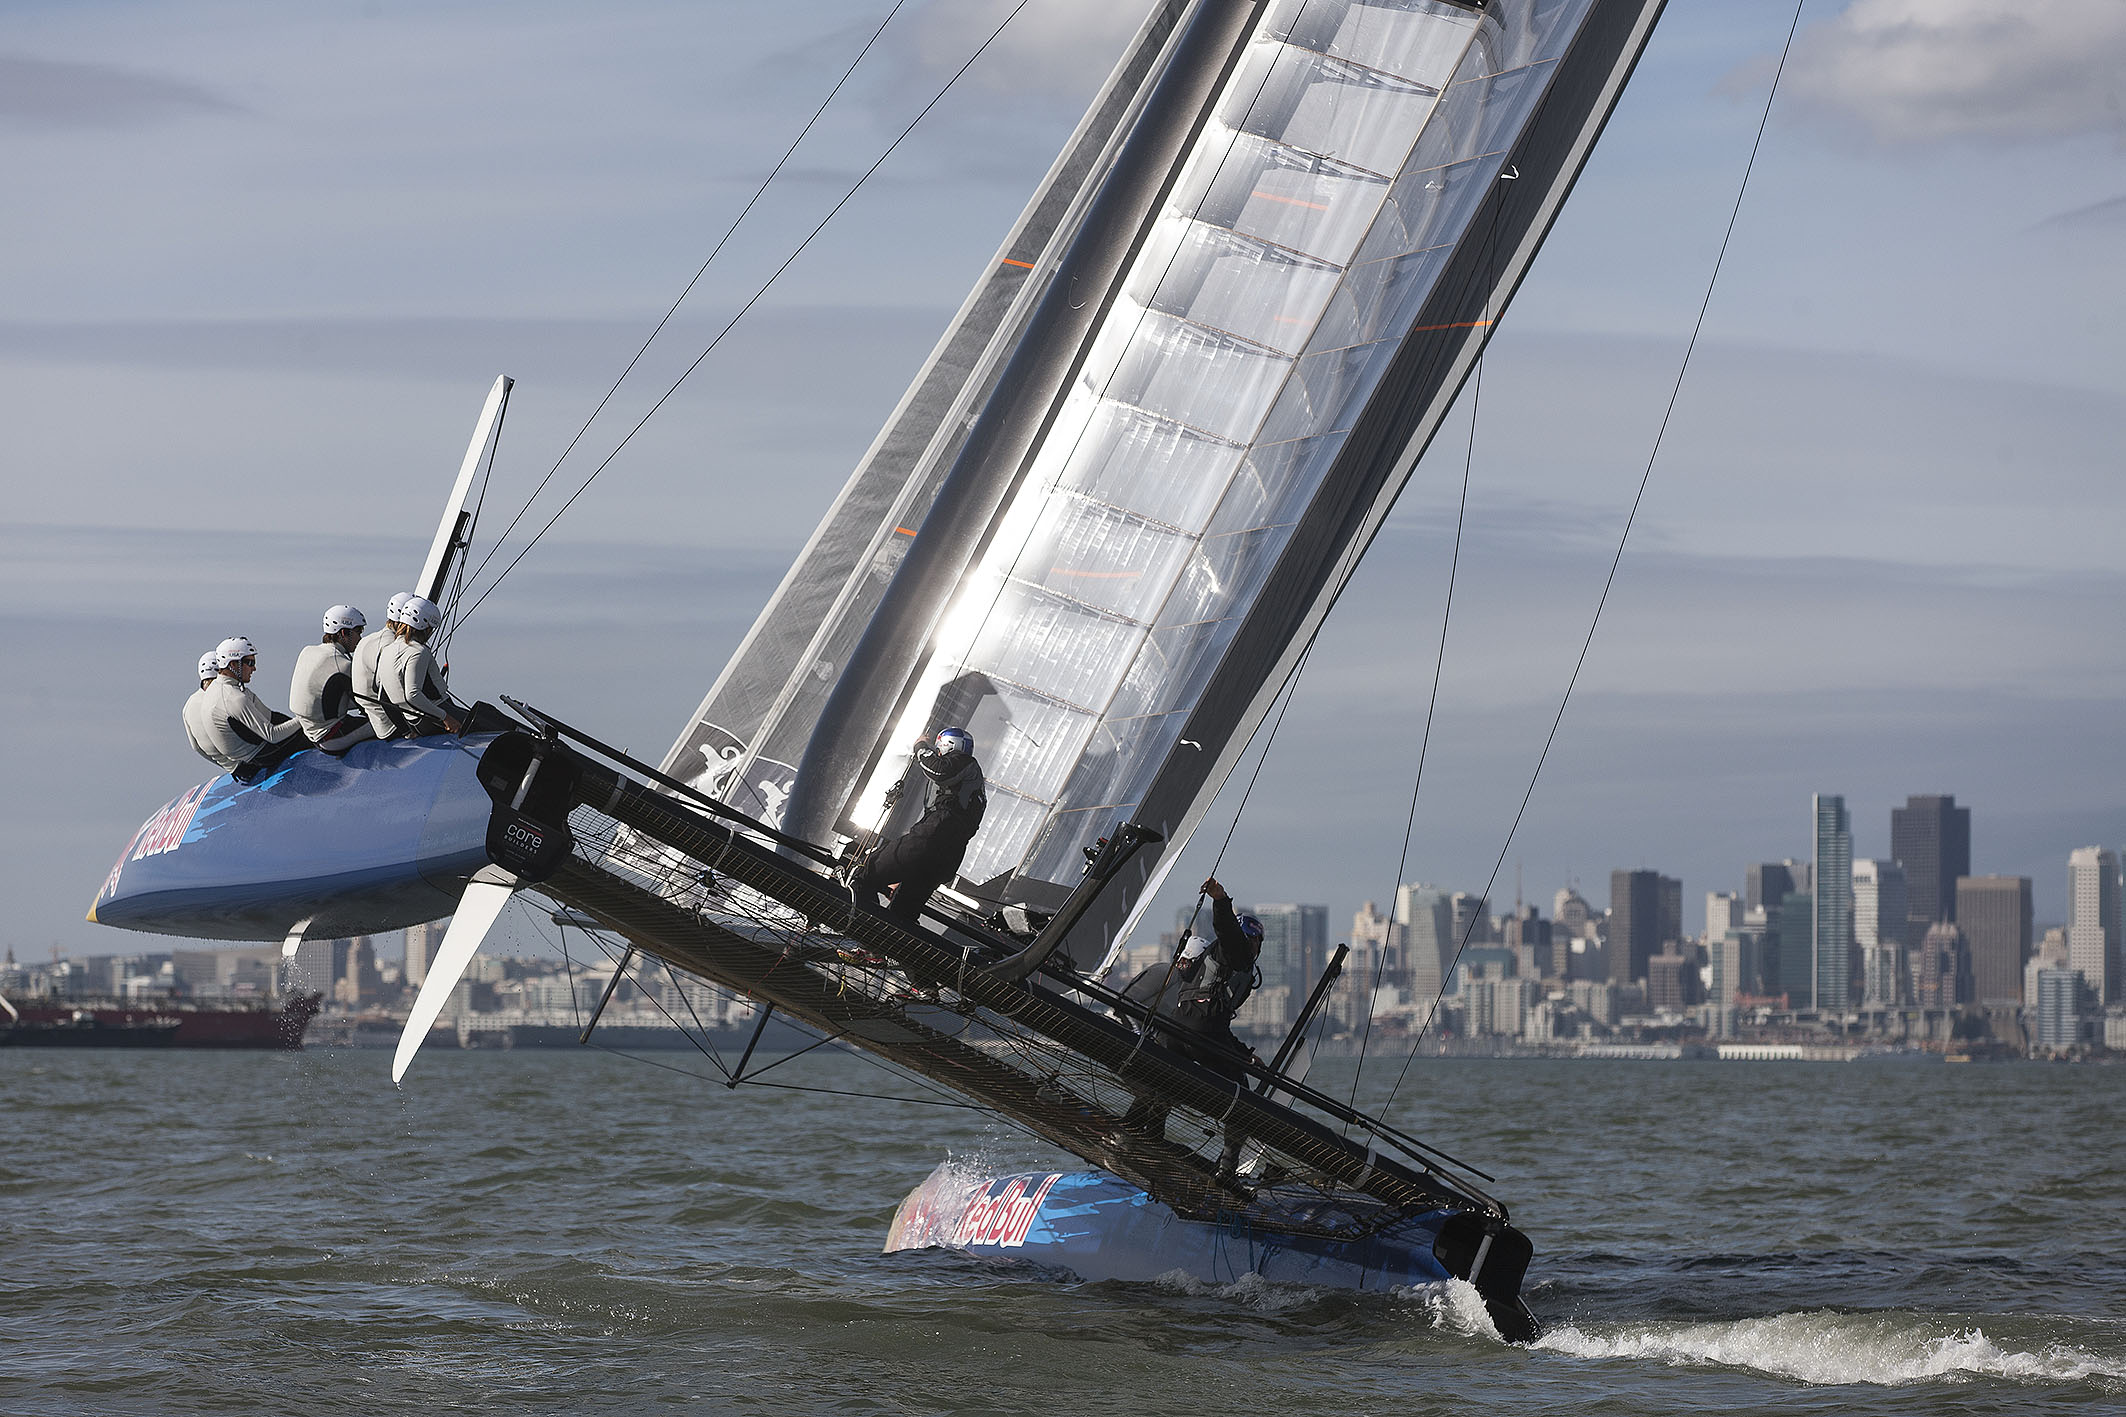 Red Bull Youth America's Cup, September 1-4, 2013 - February